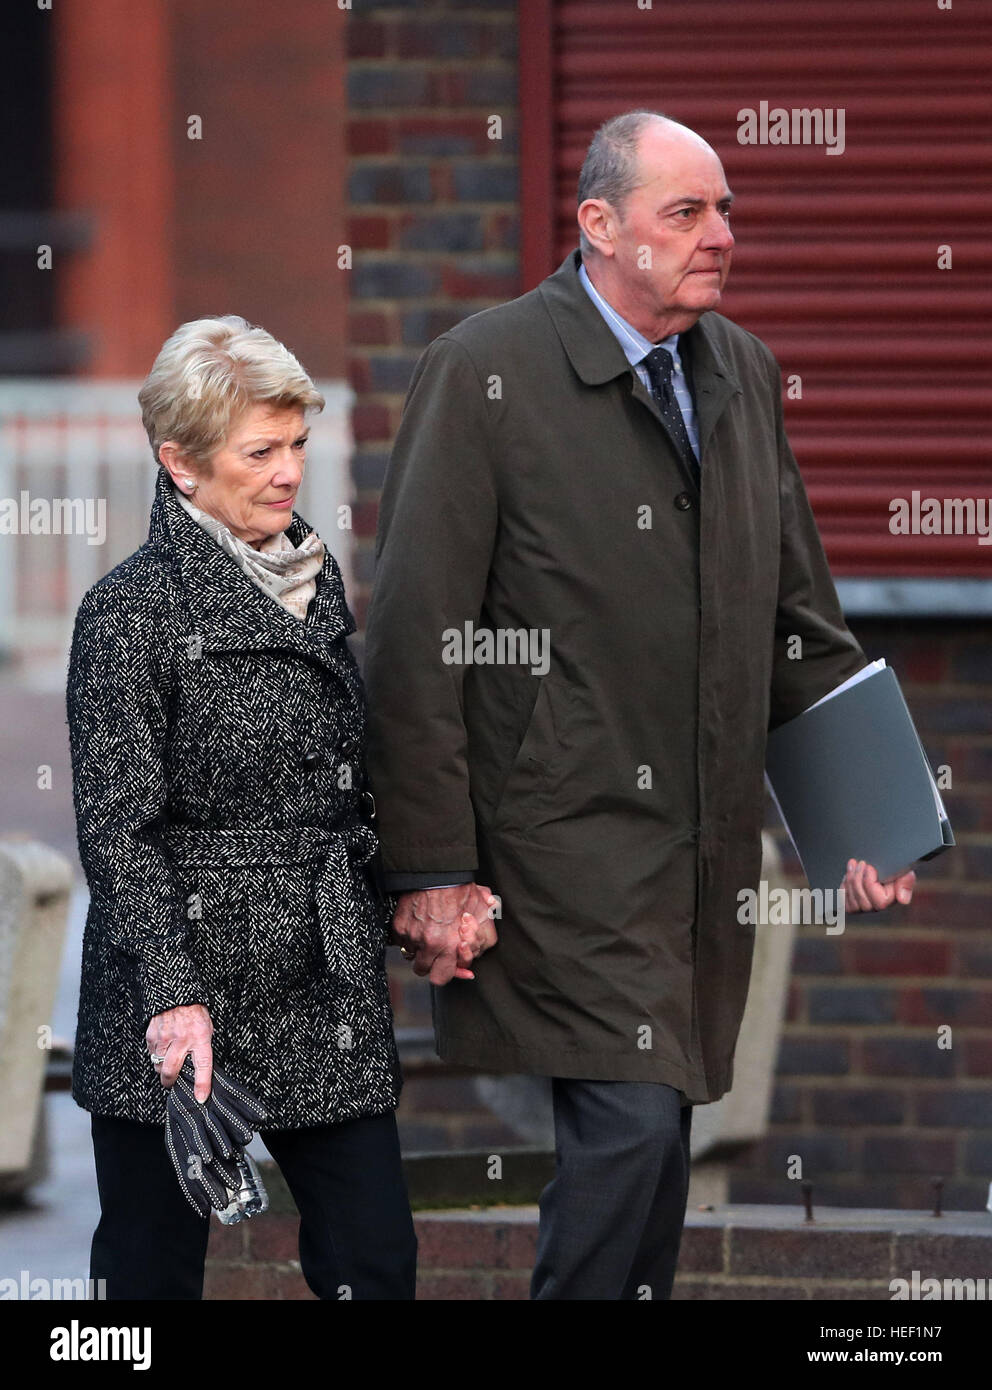 Pauline and Michael Cranch, parents of stuntman Matthew Cranch, arrive at Maidstone Crown Court for the sentencing - Stock Image